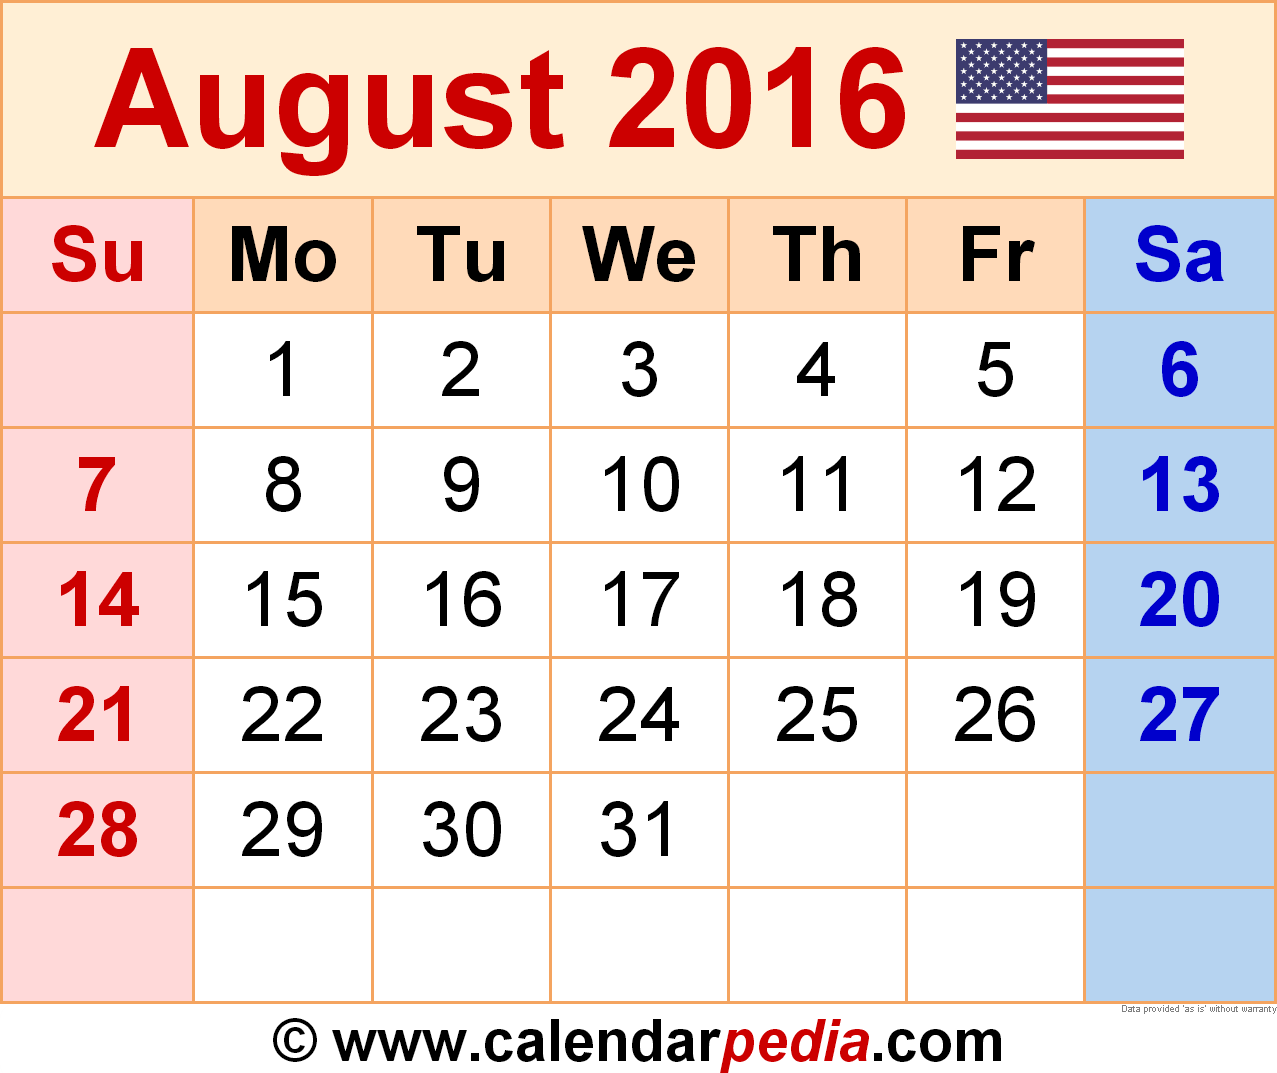 August Calendar Template 2016 from www.calendarpedia.com